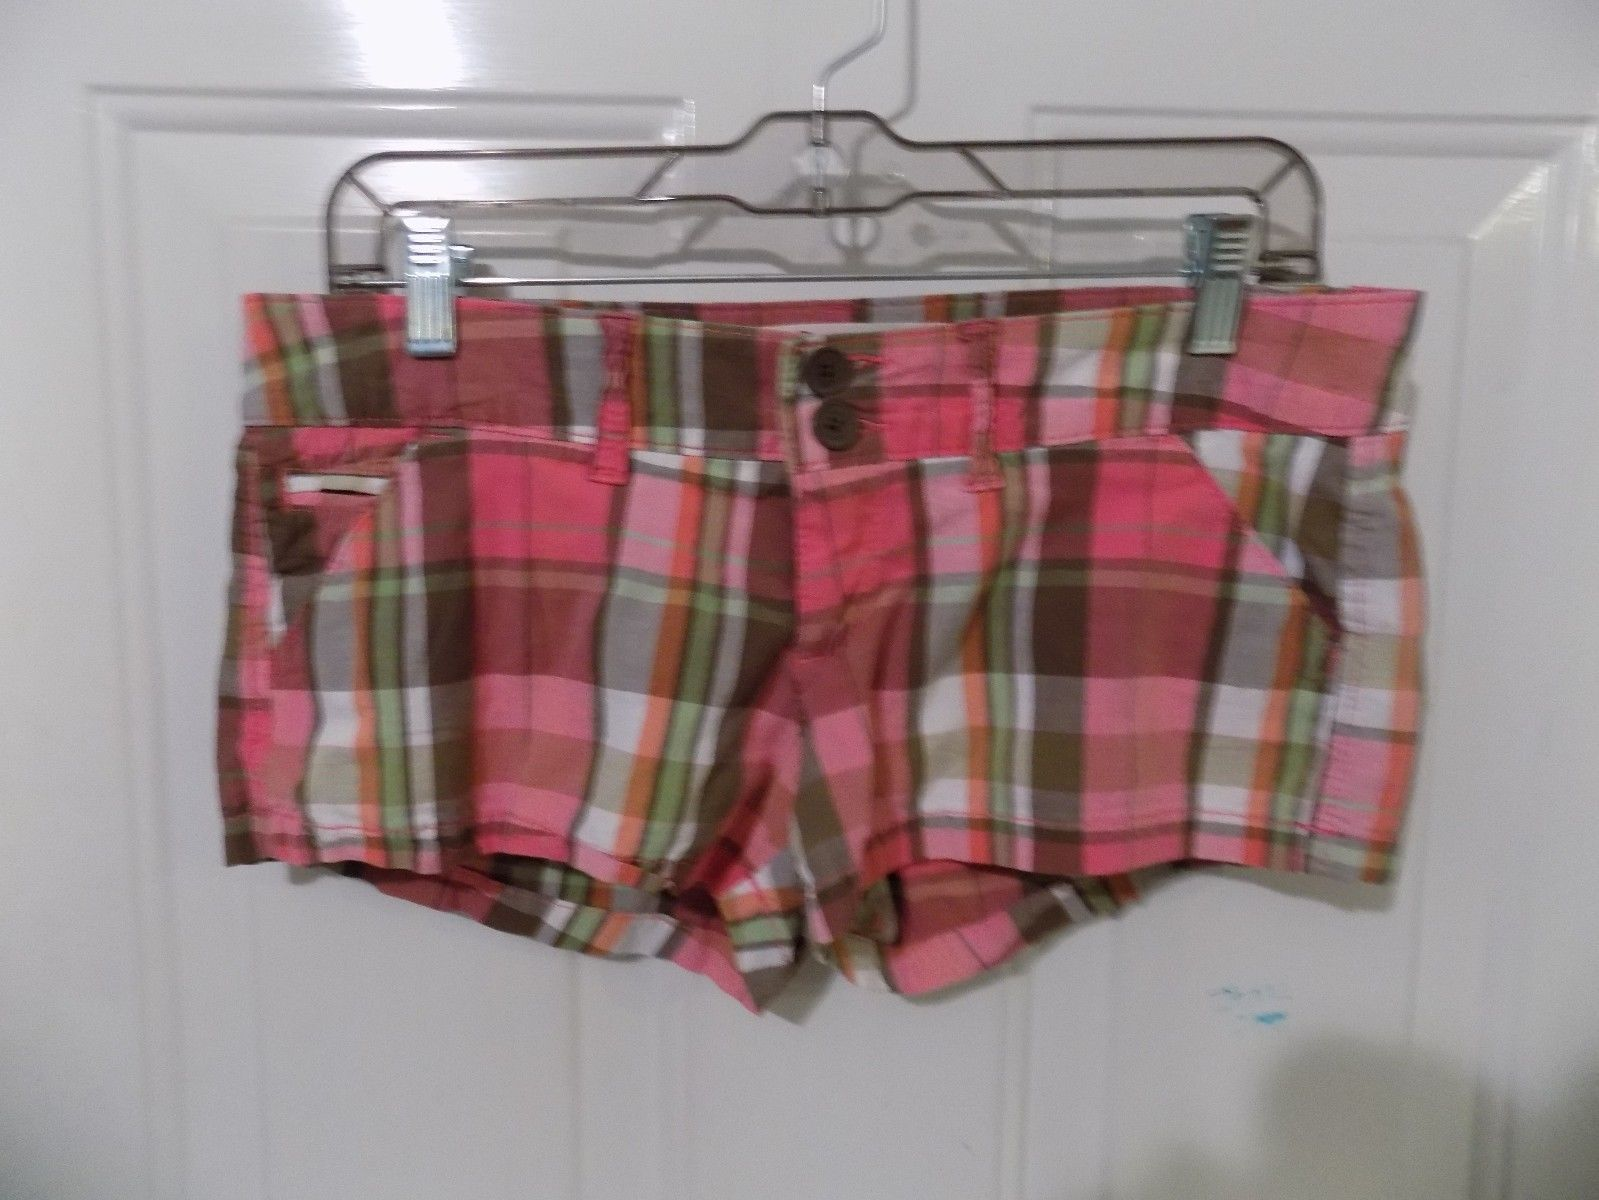 Primary image for Hollister Socal Stretch Pink Plaid Shorts Size 3  Women's EUC